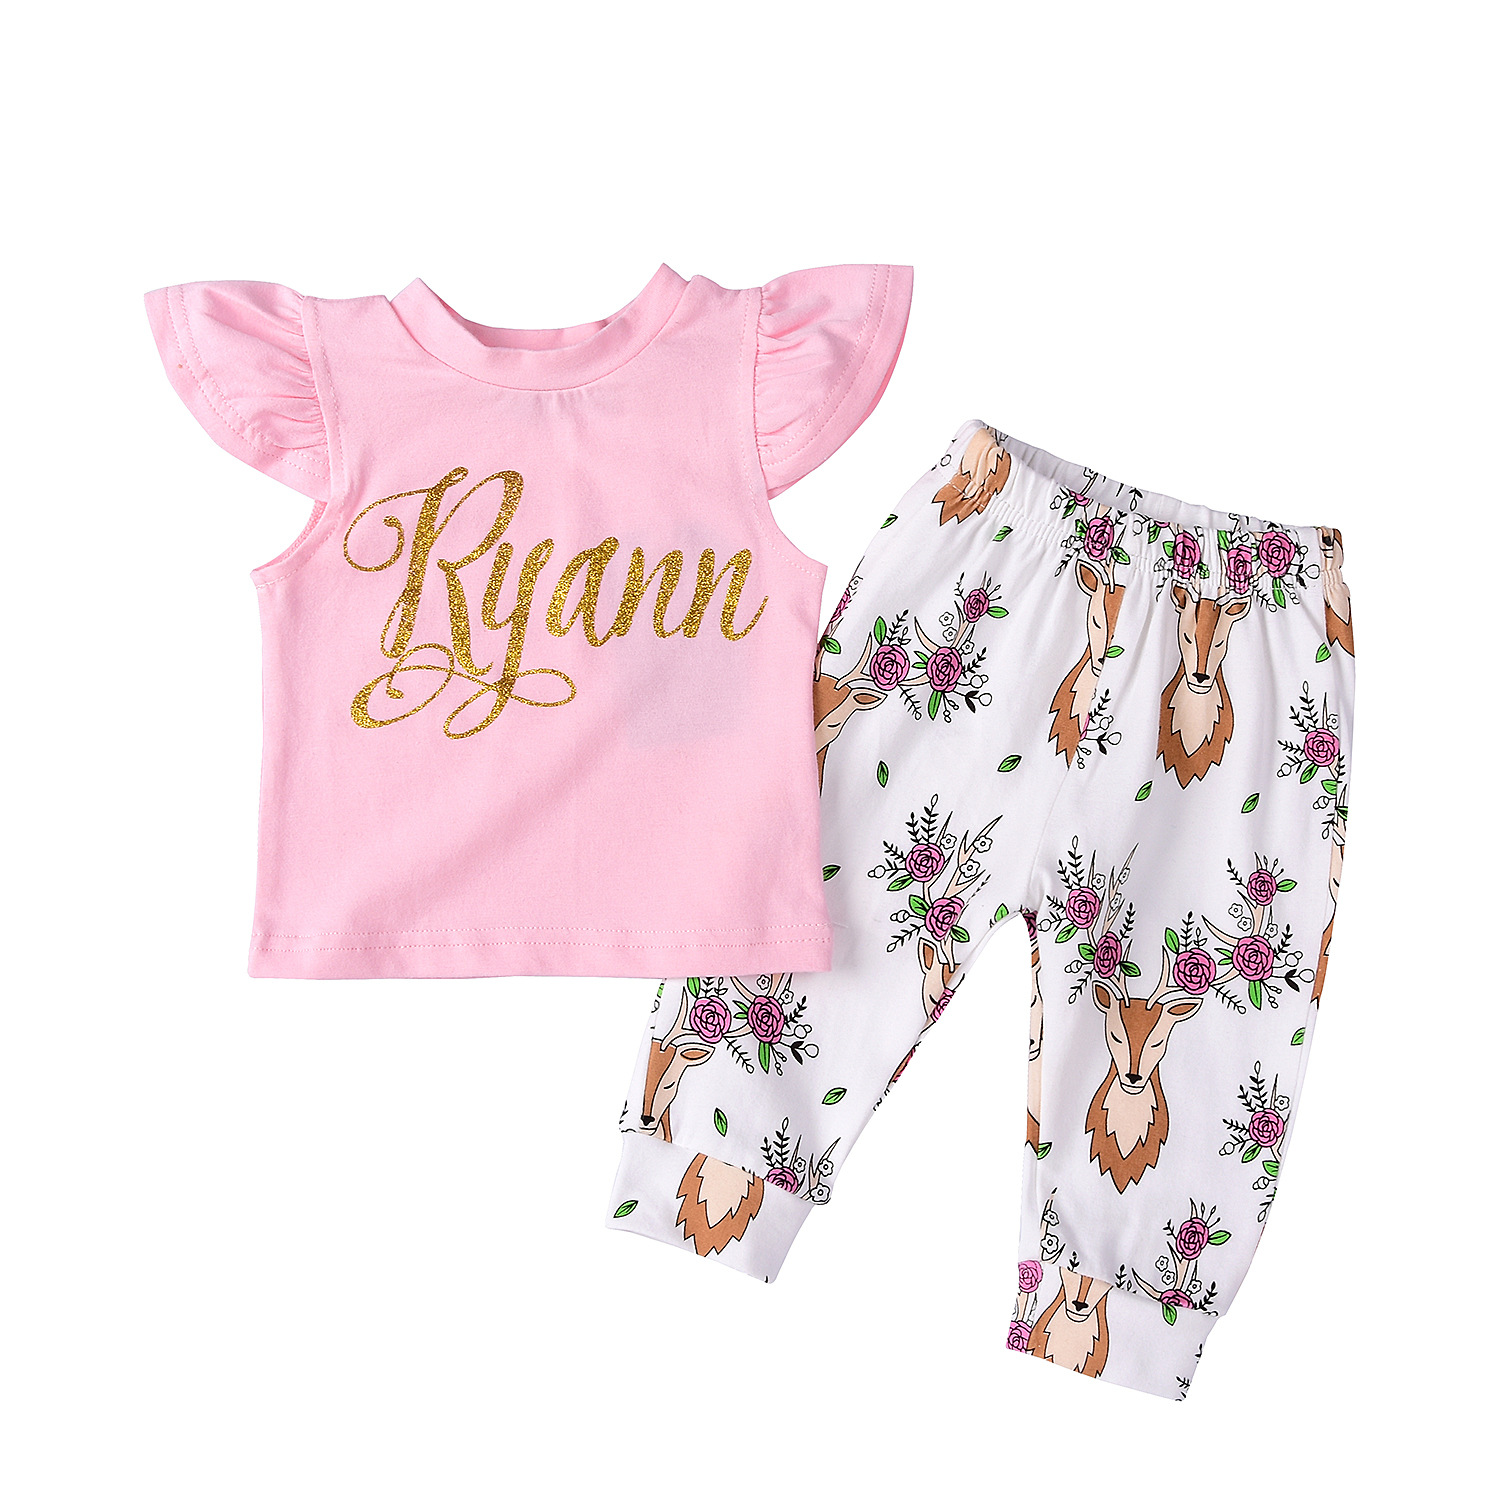 2018 New Summer Children Clothes Suits Baby Girl Ruffled Top With Animal Pants Clothing Suits